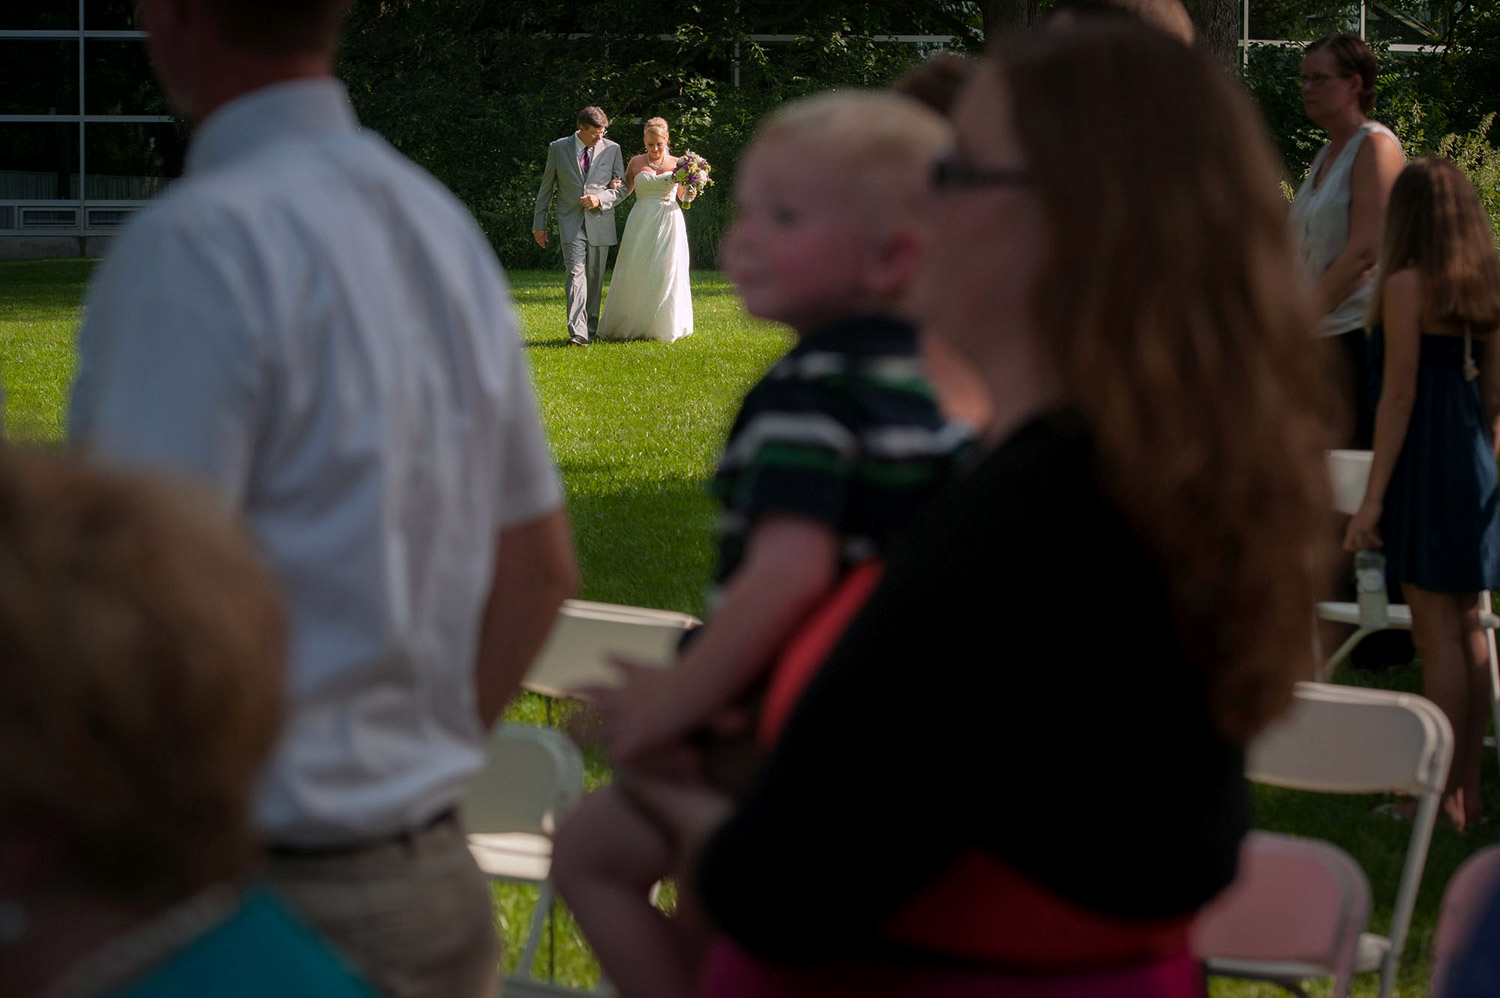 wedding-photography-minneapolis-mark-kegans-440.jpg